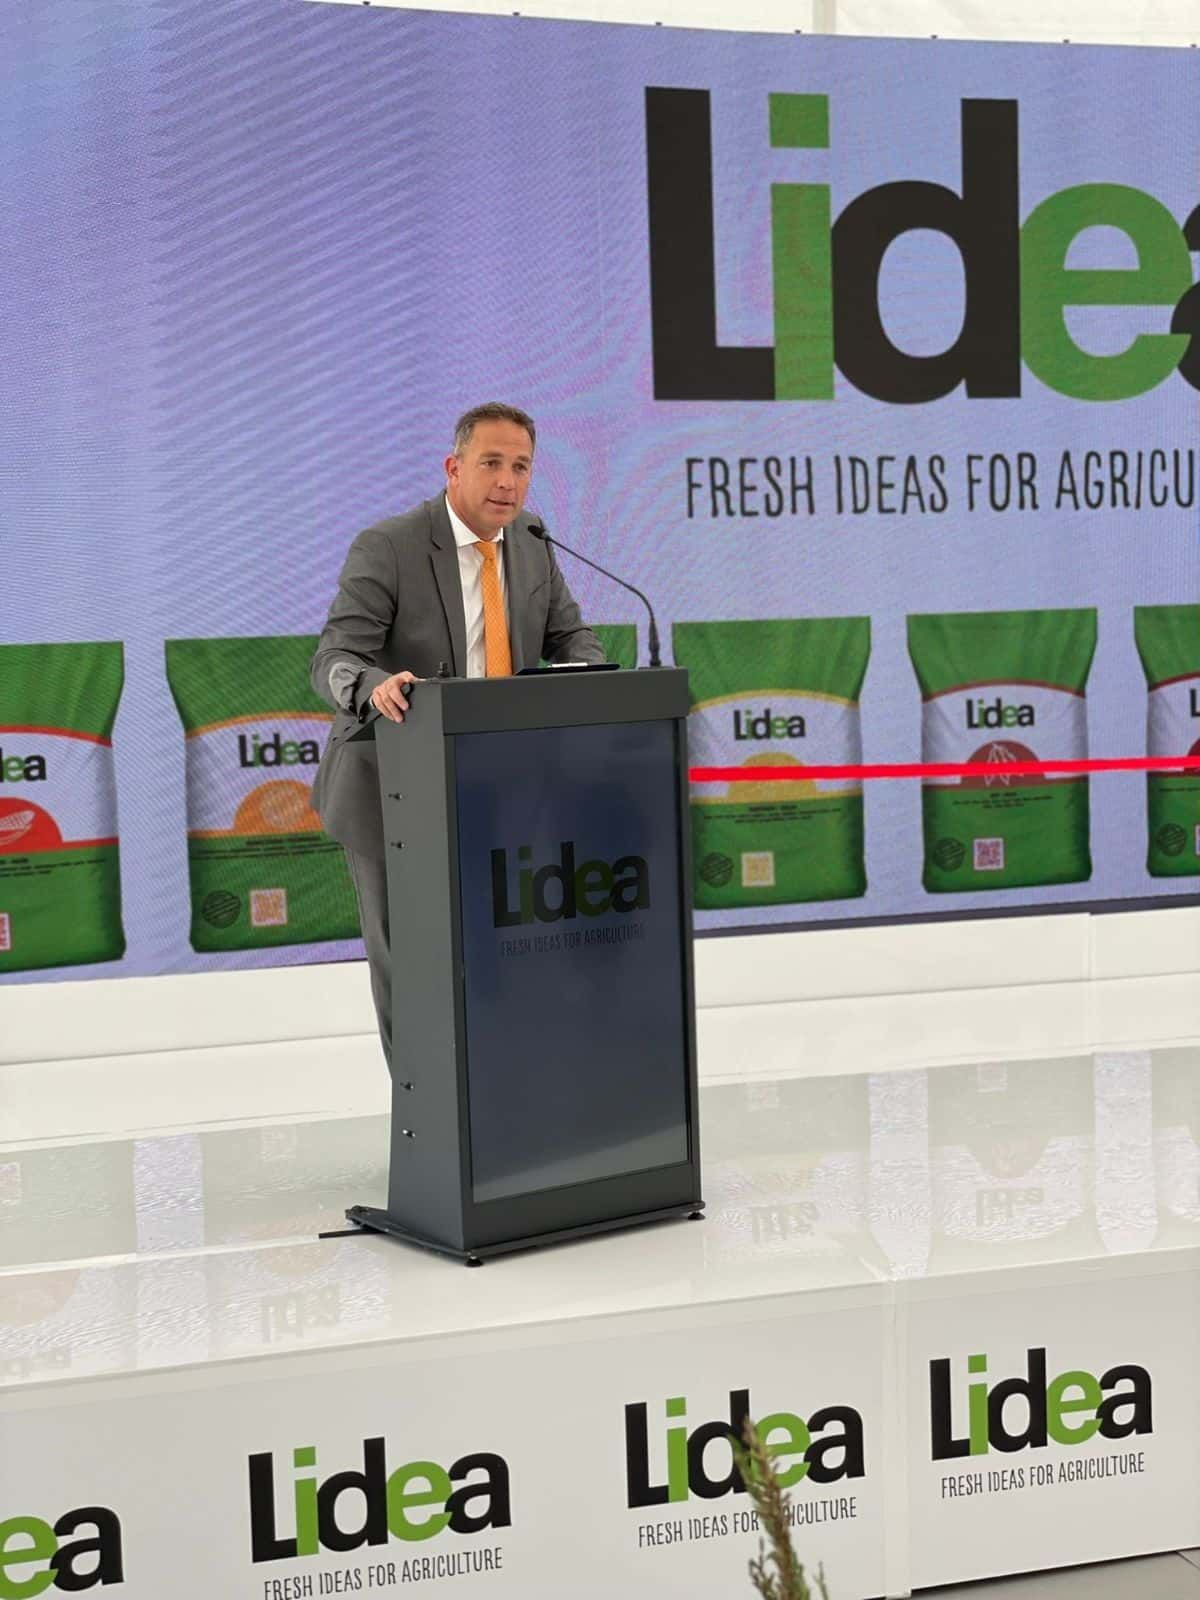 LIDEA OPENS NEW SEED PRODUCTION AND PACKAGING PLANT IN BRĂILA, ROMANIA